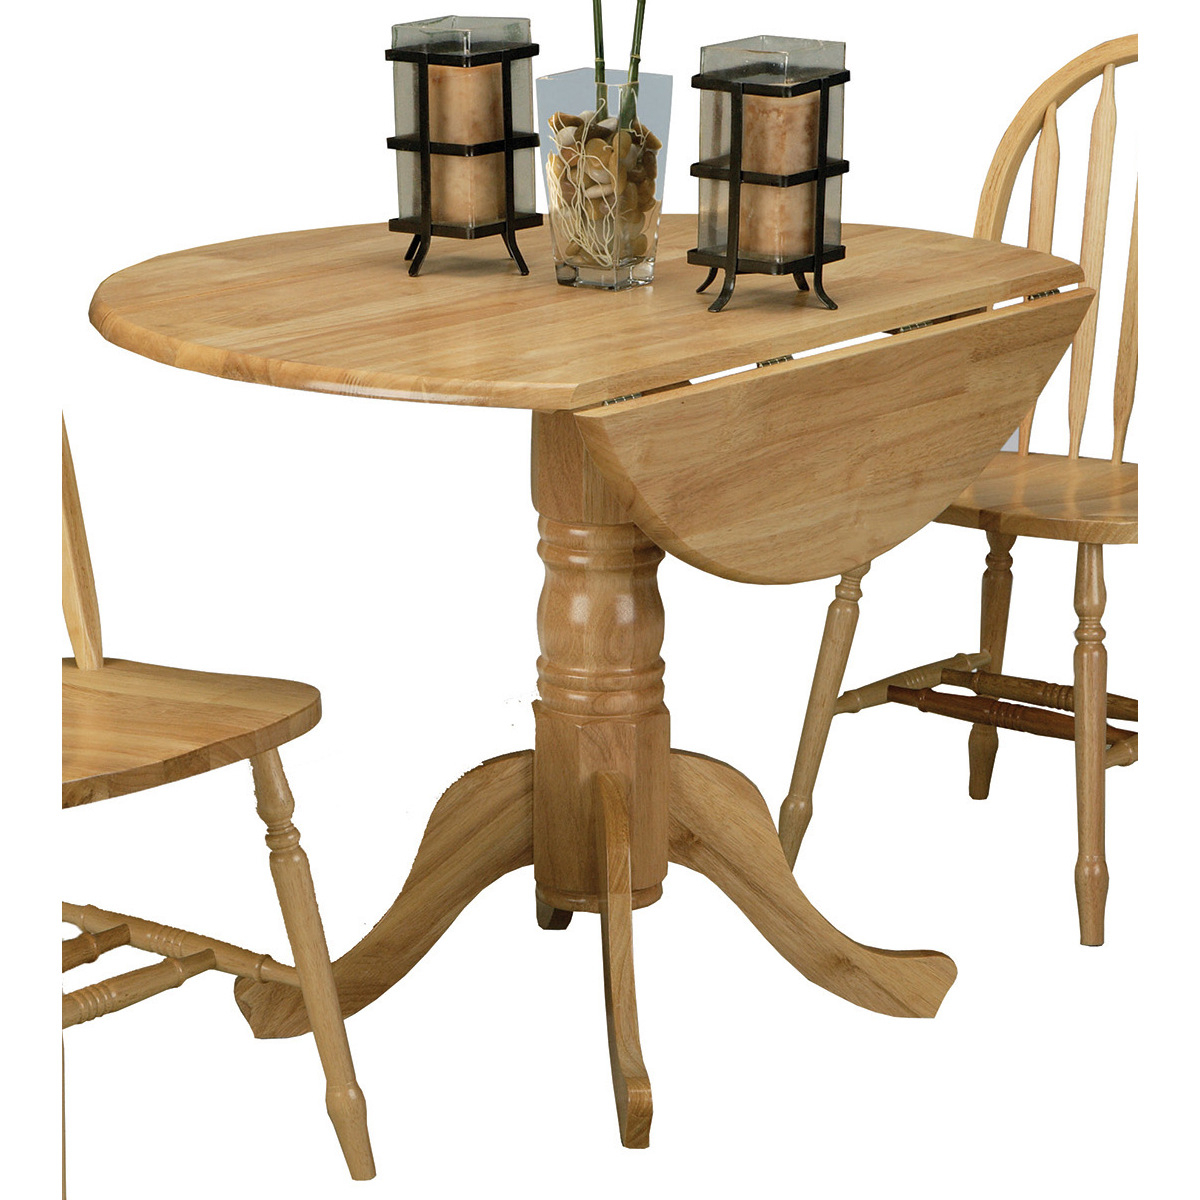 5140Nadt Drop Leaf Pedestal Table Intended For Current Boothby Drop Leaf Rubberwood Solid Wood Pedestal Dining Tables (View 8 of 15)